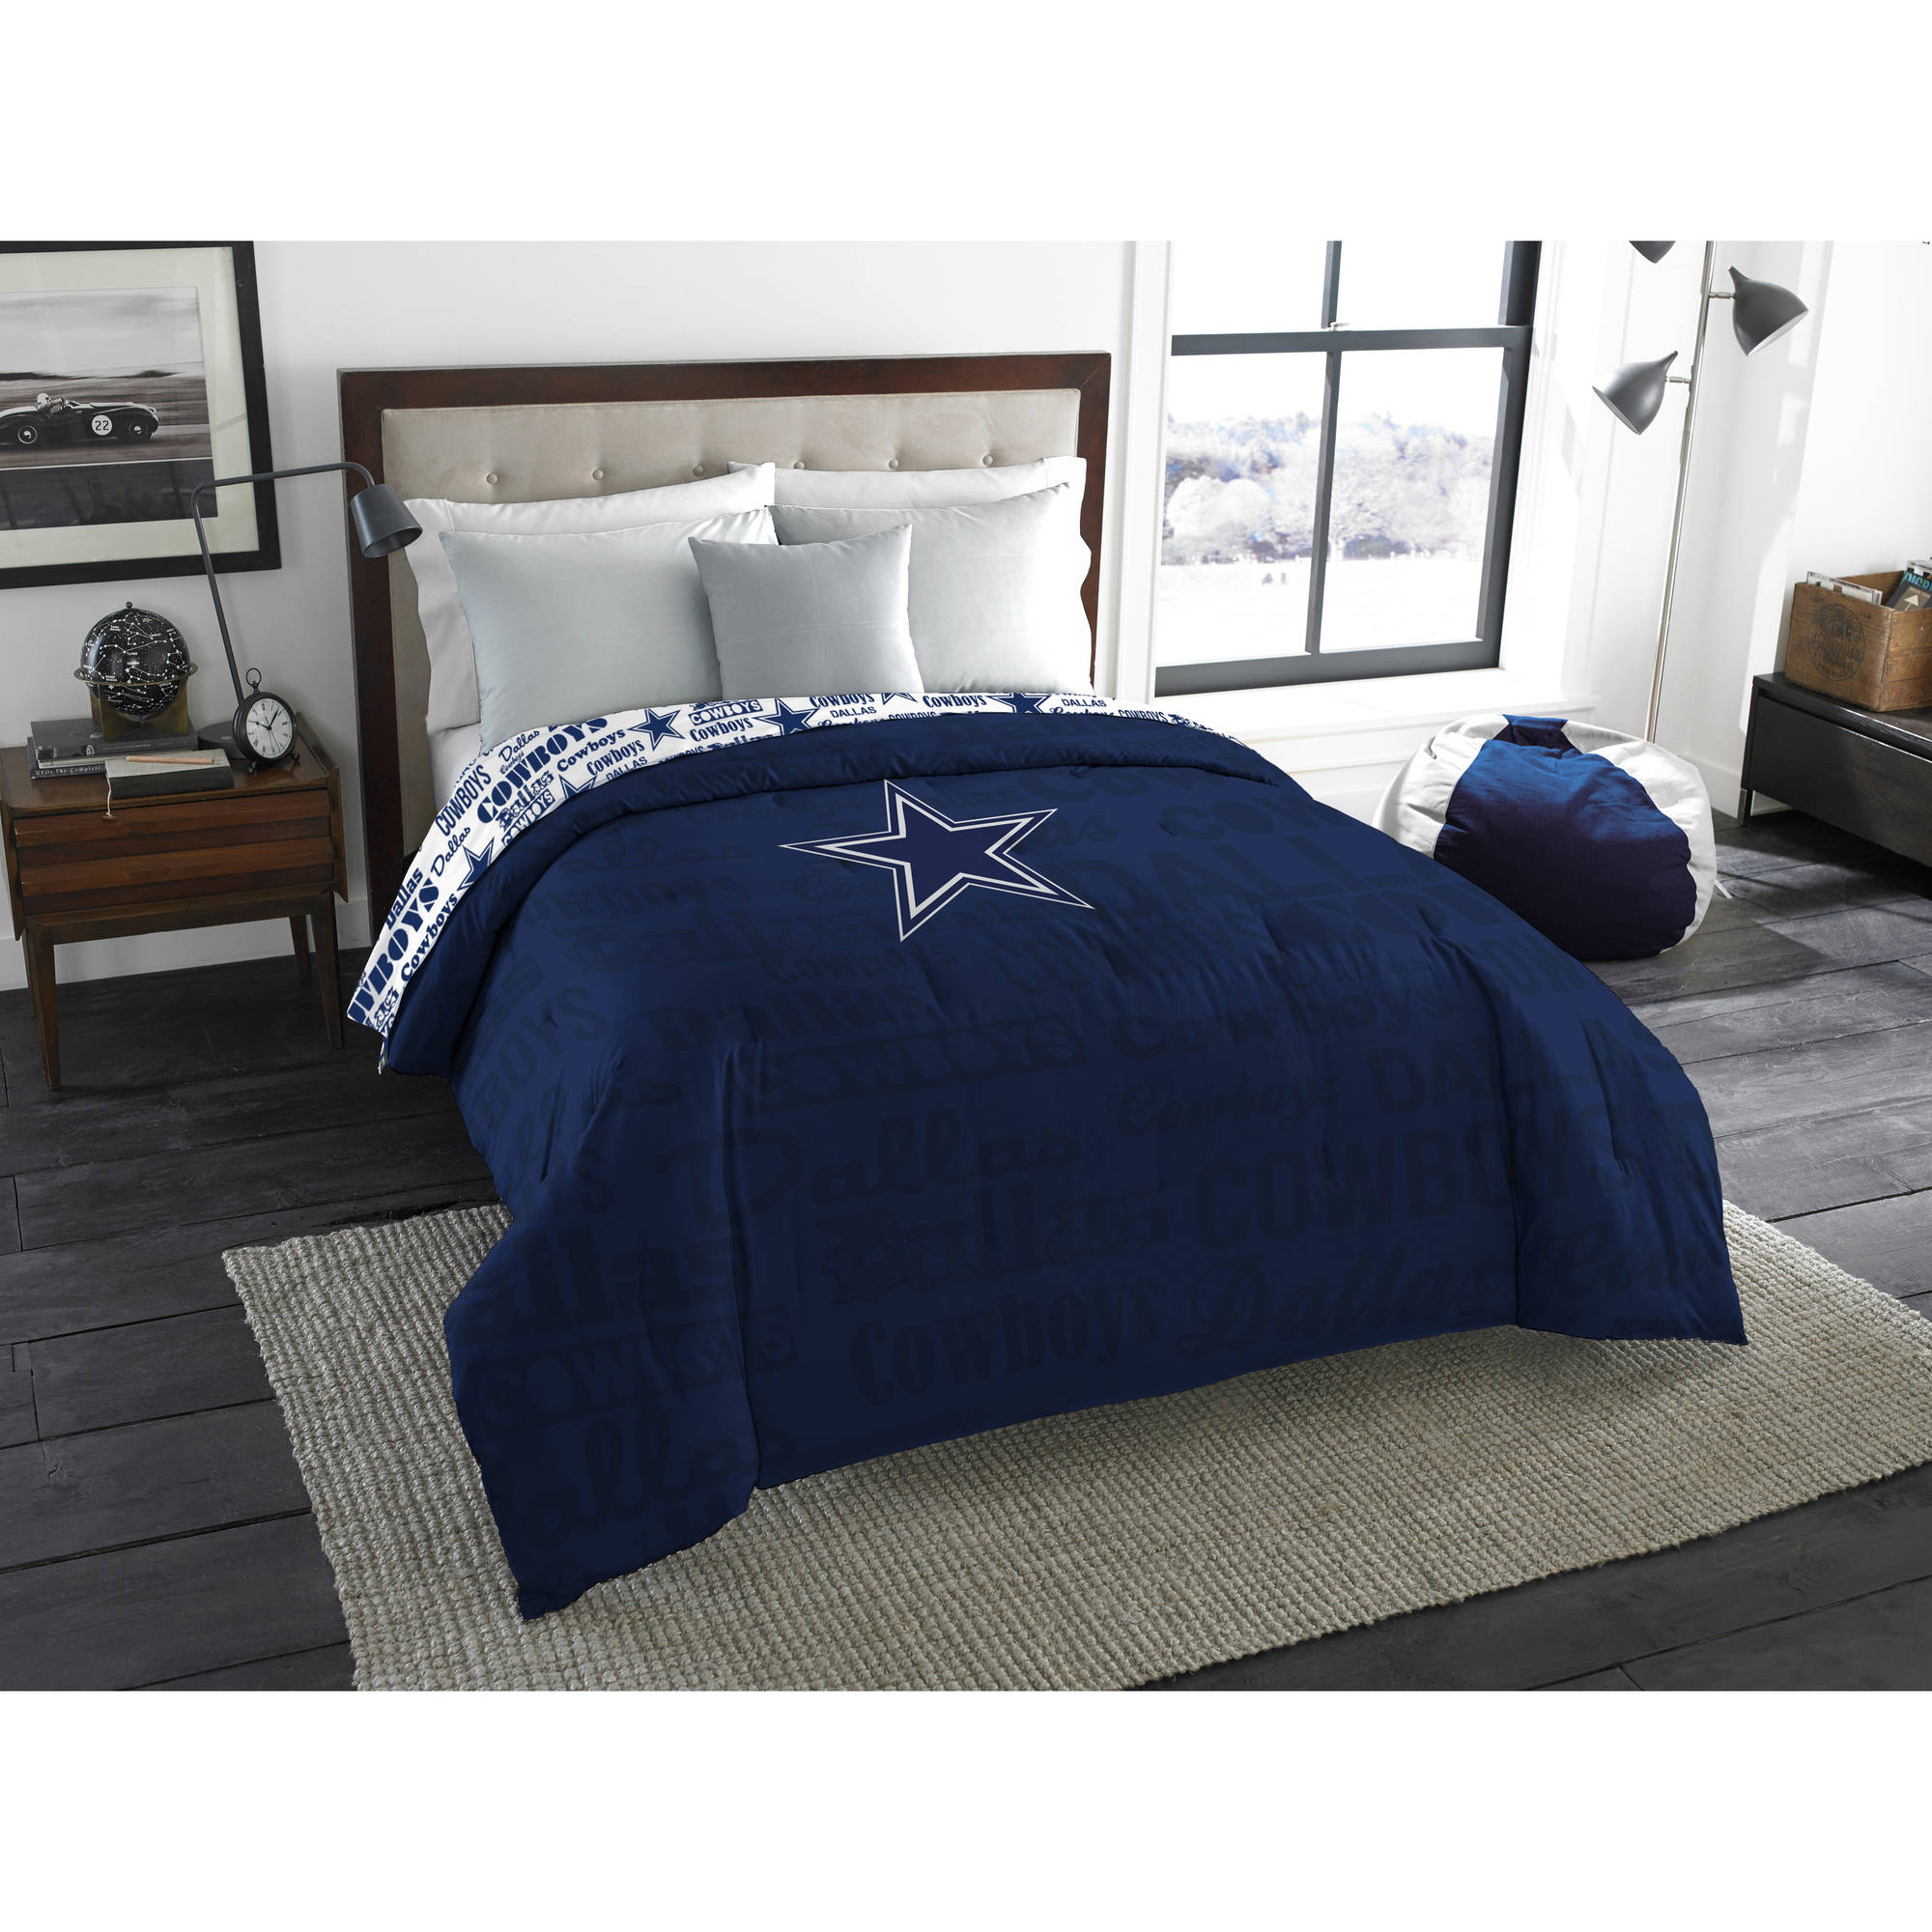 "NFL Dallas Cowboys ""Anthem"" Twin/Full Bedding Comforter"